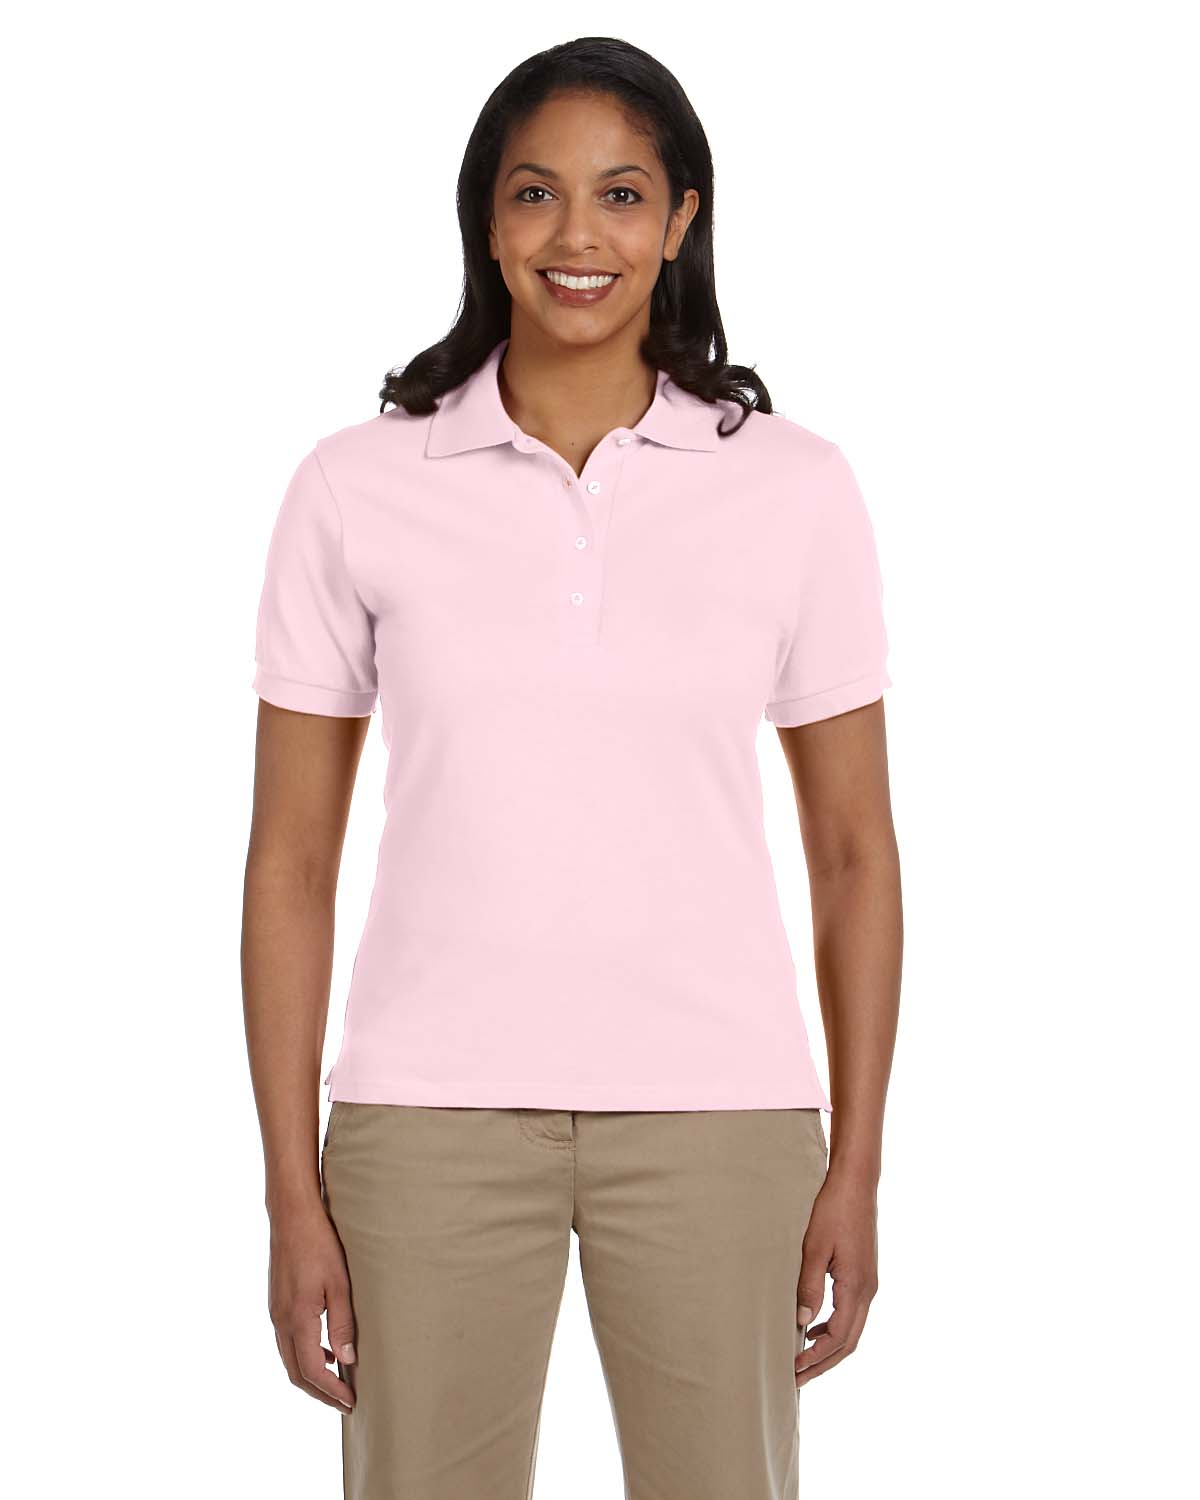 Jerzees Ladies 6.5 Oz. Ringspun Cotton Pique Polo